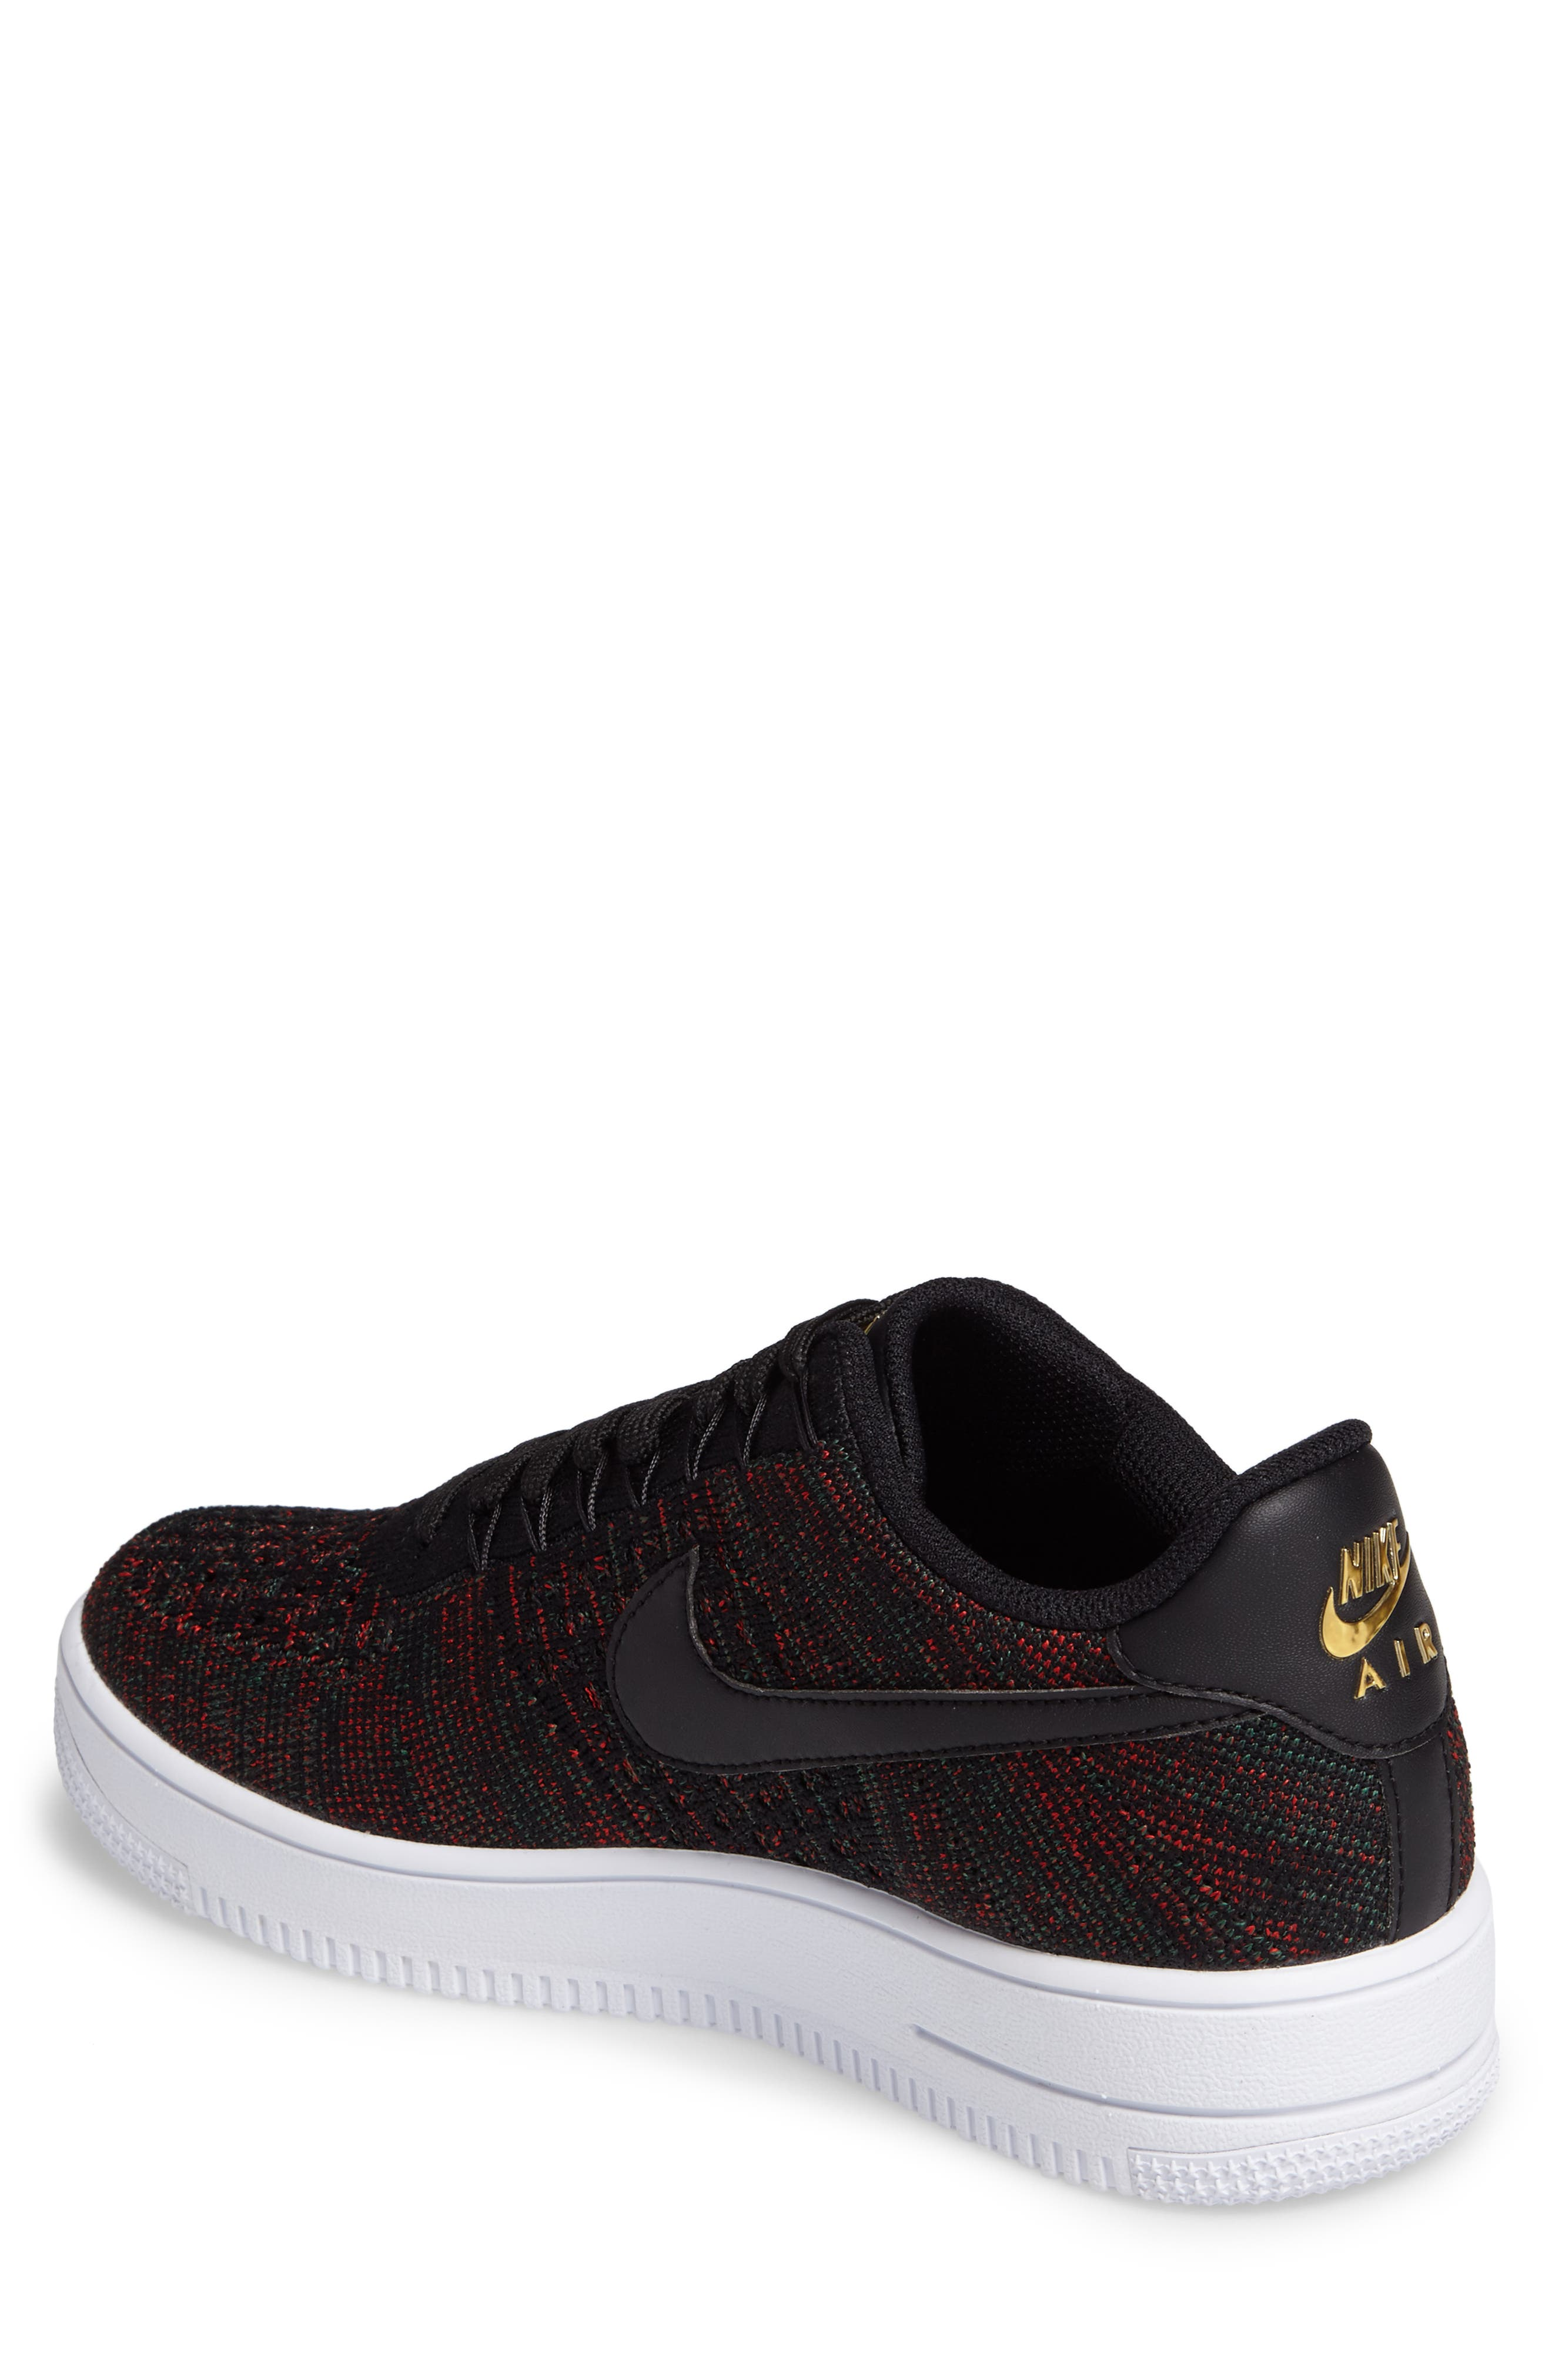 Air Force 1 Ultra Flyknit Low Sneaker,                             Alternate thumbnail 2, color,                             005